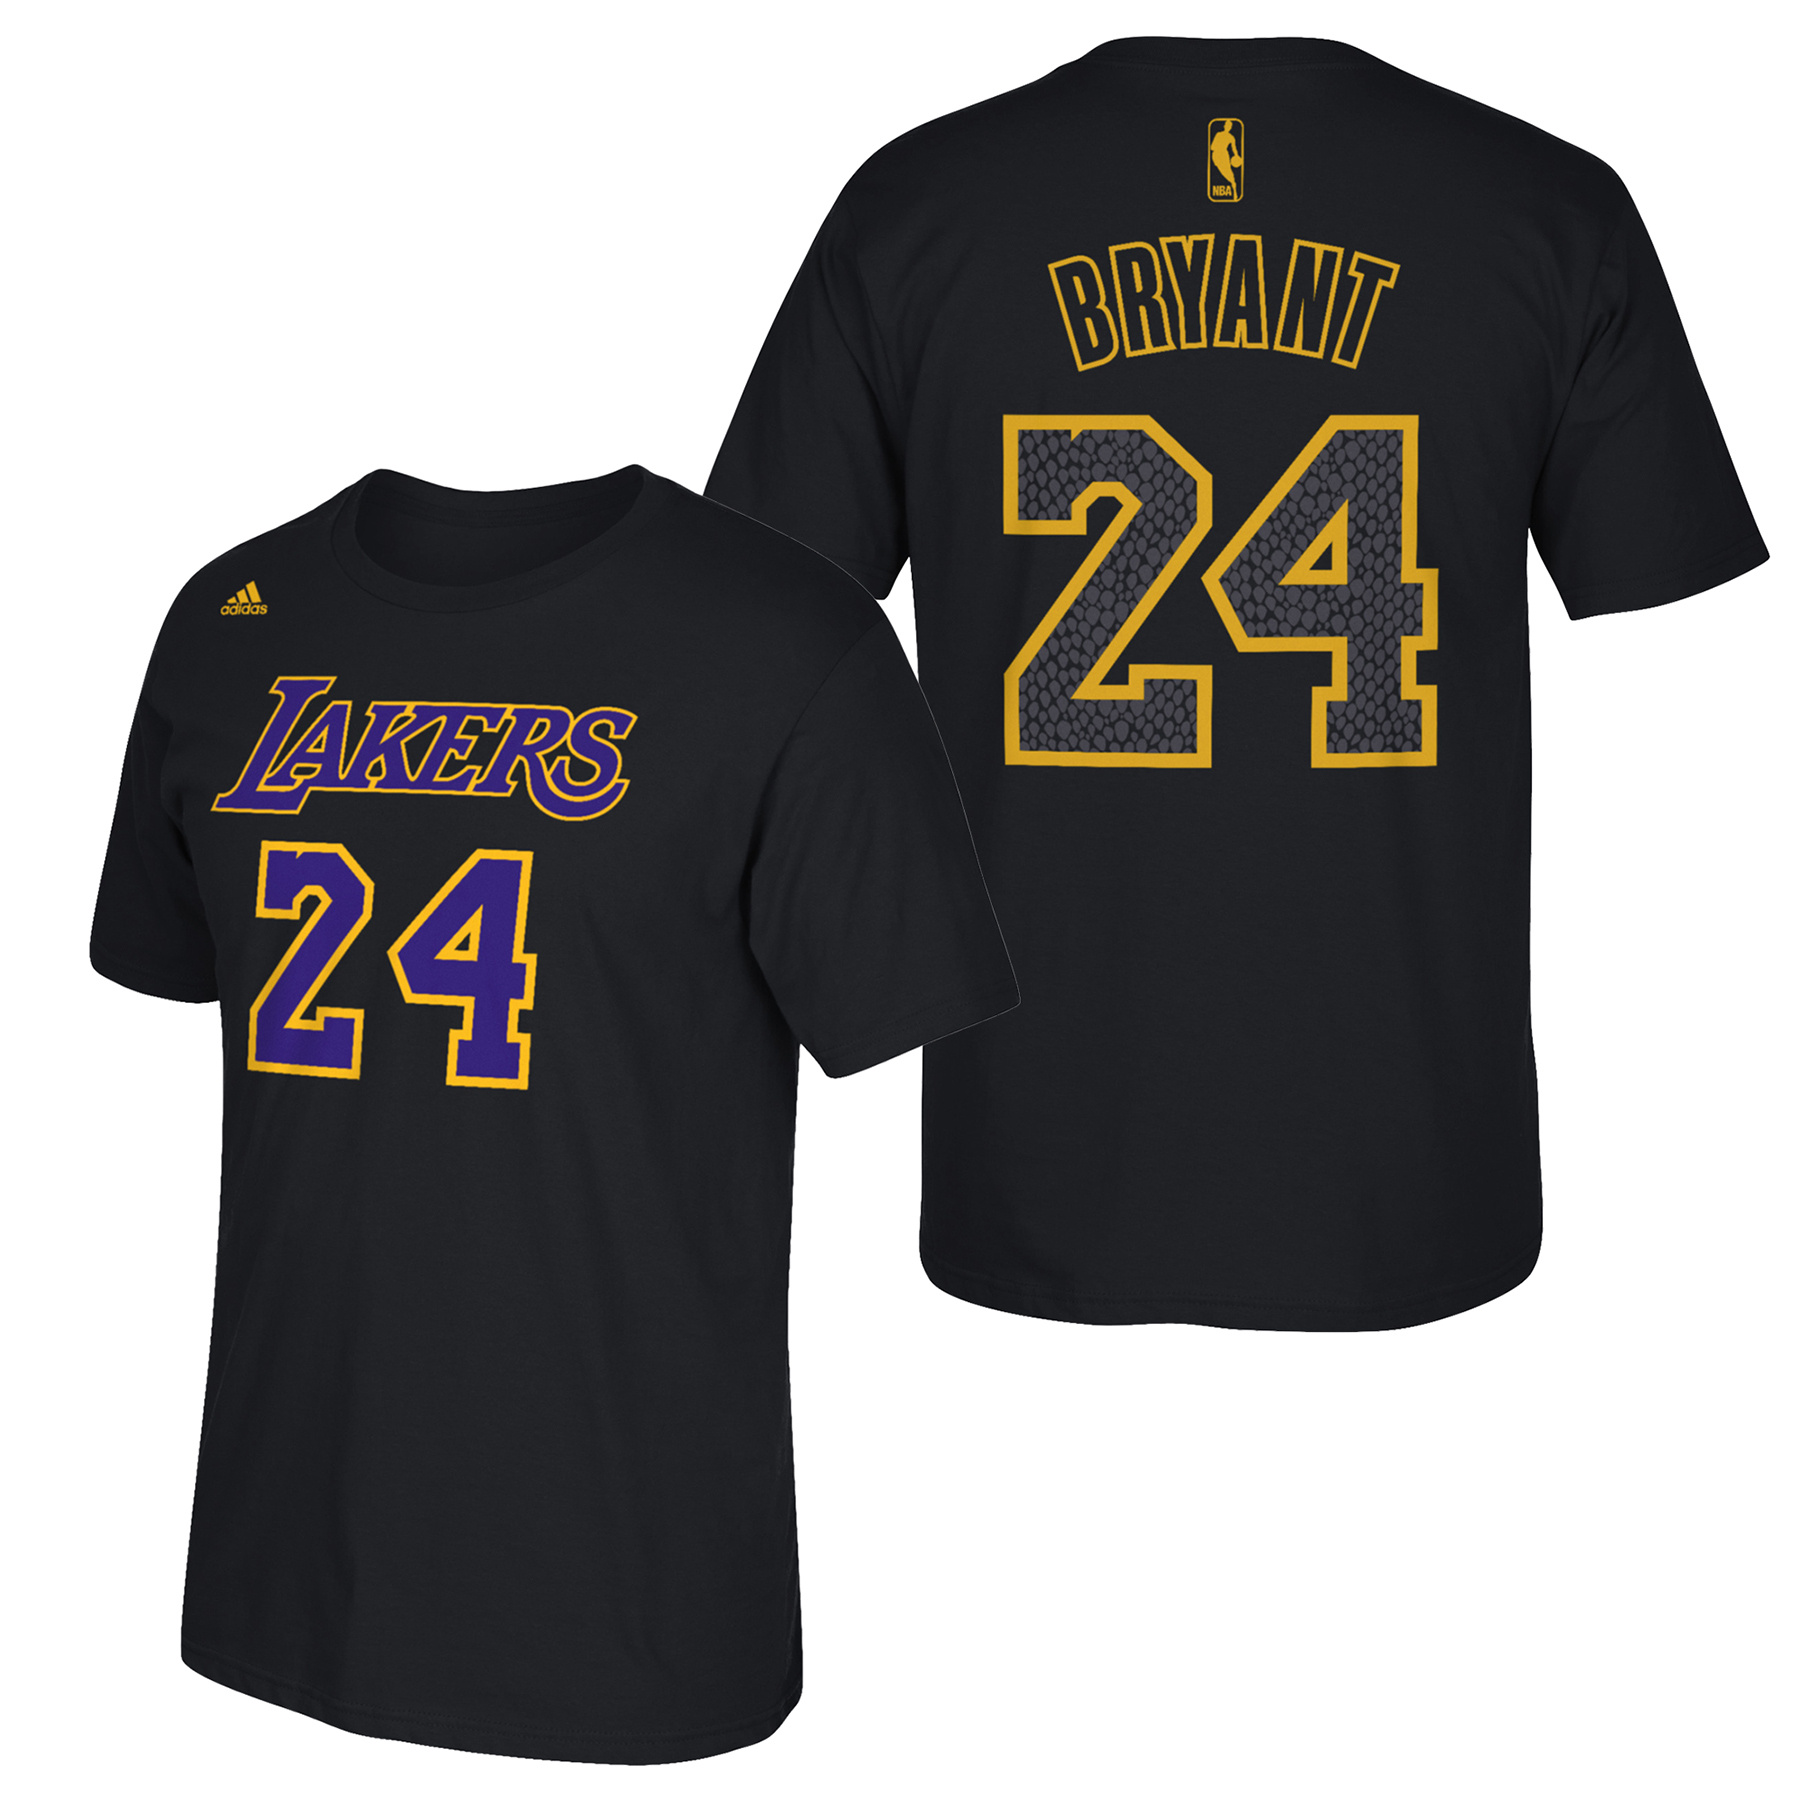 Los Angeles Lakers adidas Name & Number T-Shirt - Kobe Bryant